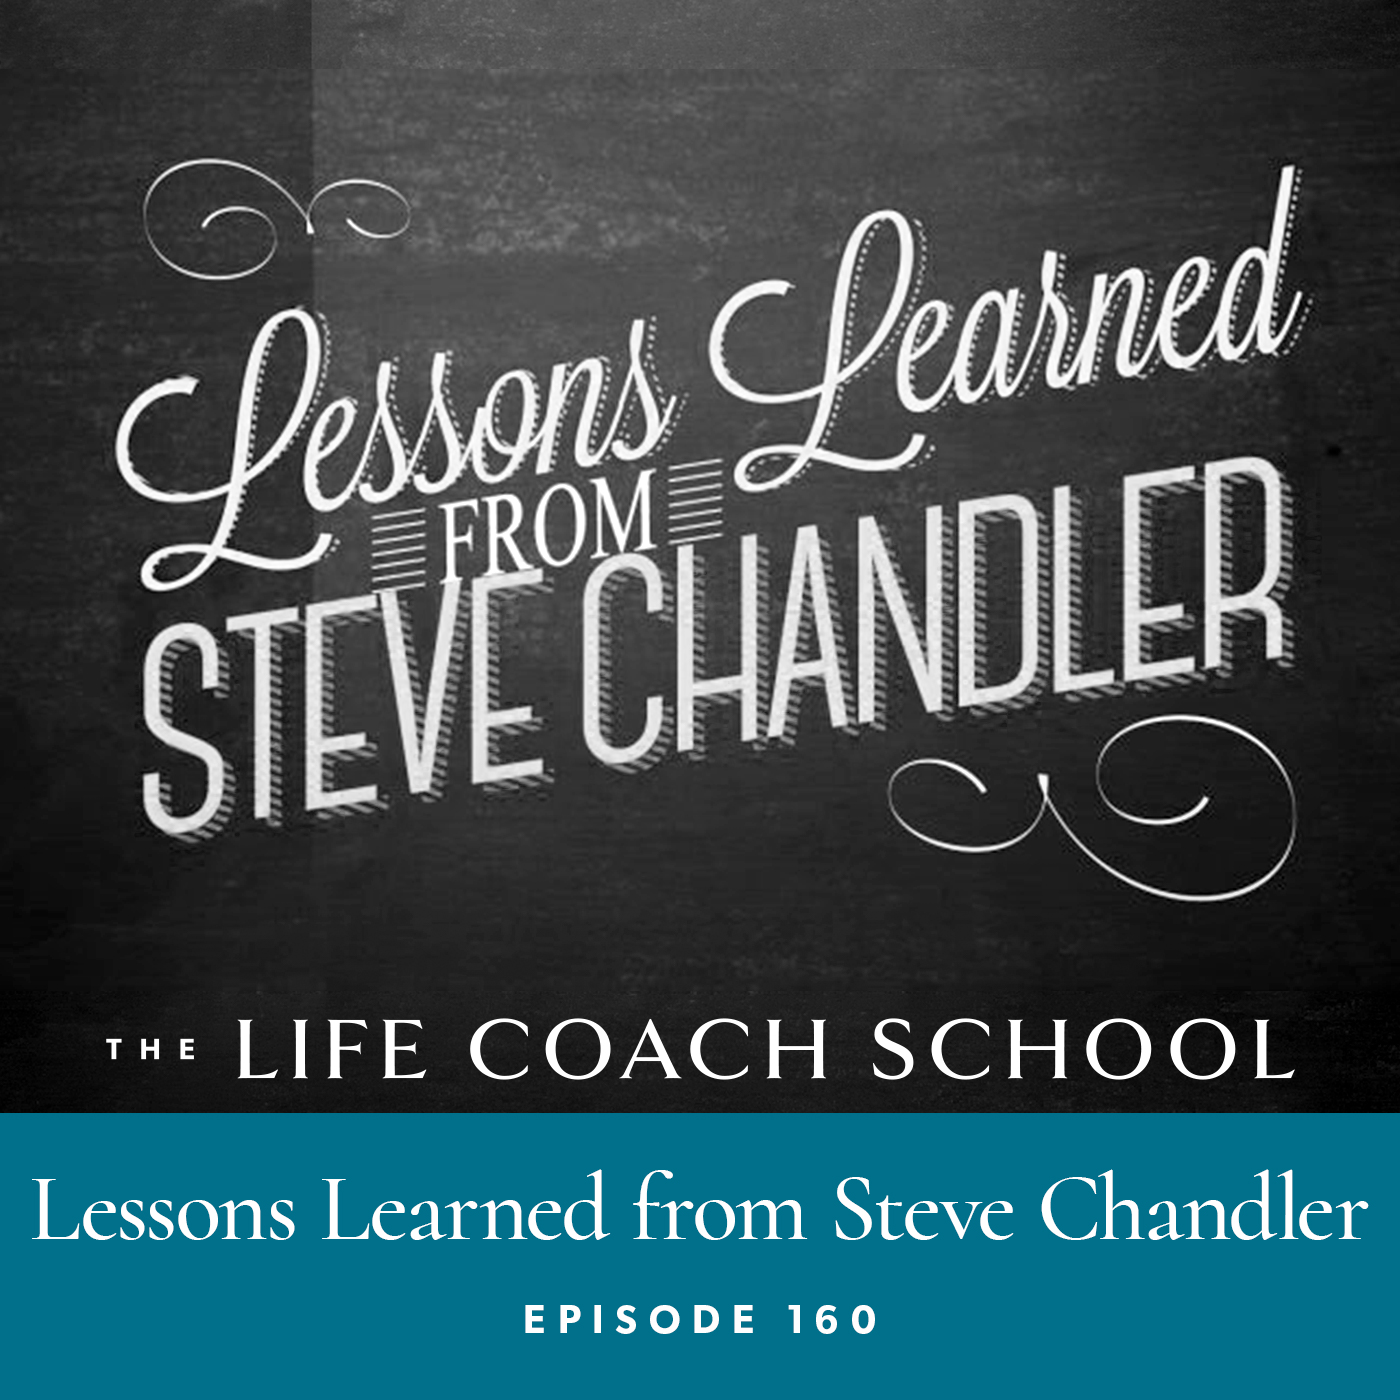 The Life Coach School Podcast with Brooke Castillo | Episode 160 | Lessons Learned from Steve Chandler